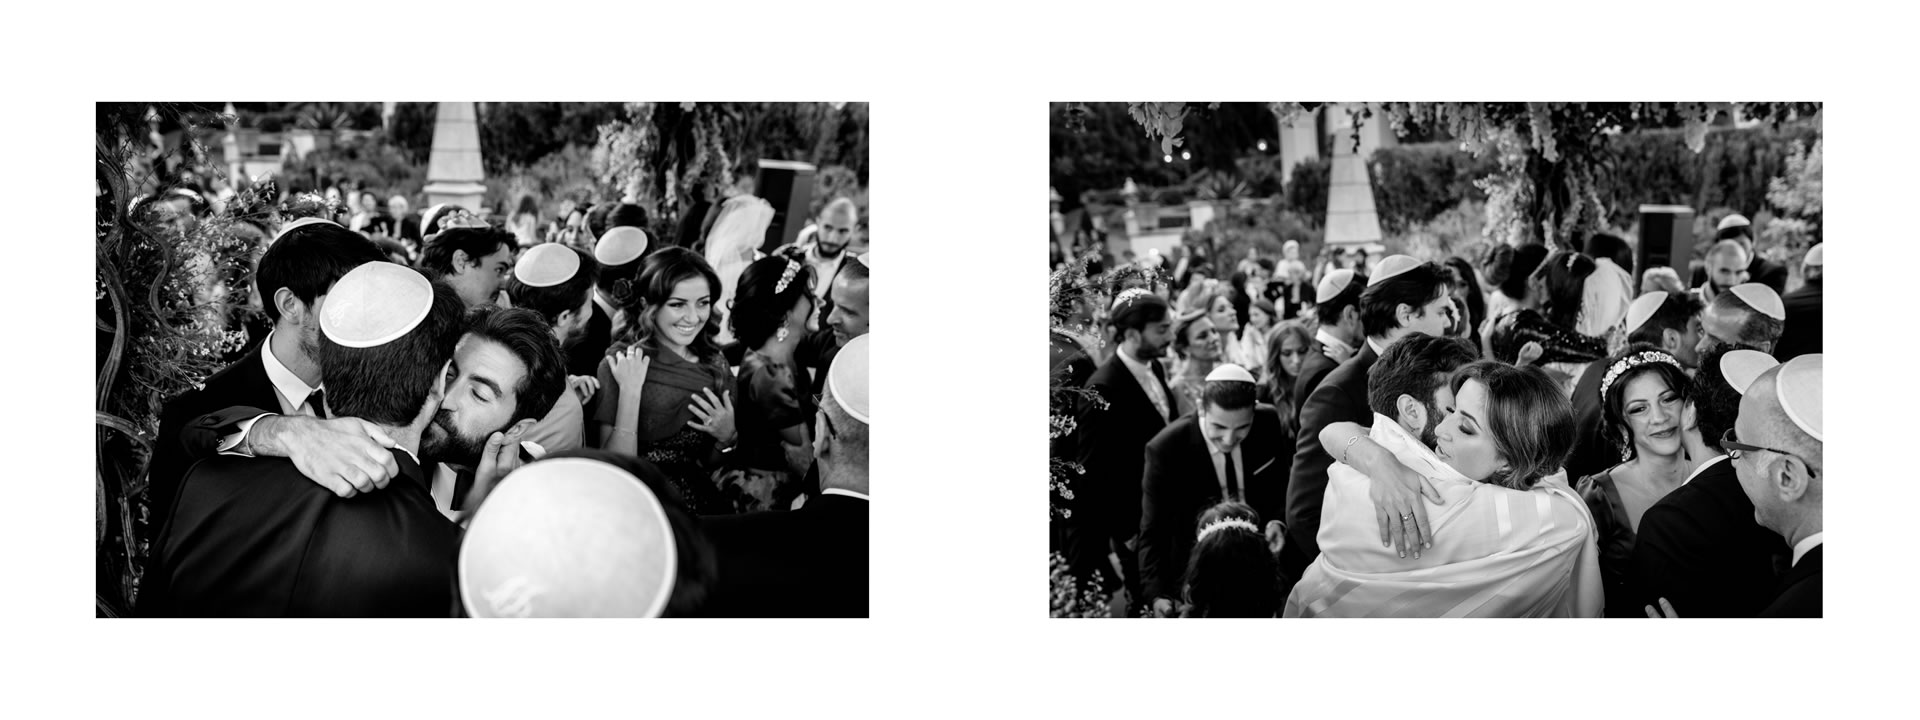 Jewish marriage in Rome: a photoreportage - 24 :: Jewish marriage in Rome: a photoreportage :: Luxury wedding photography - 23 :: Jewish marriage in Rome: a photoreportage - 24